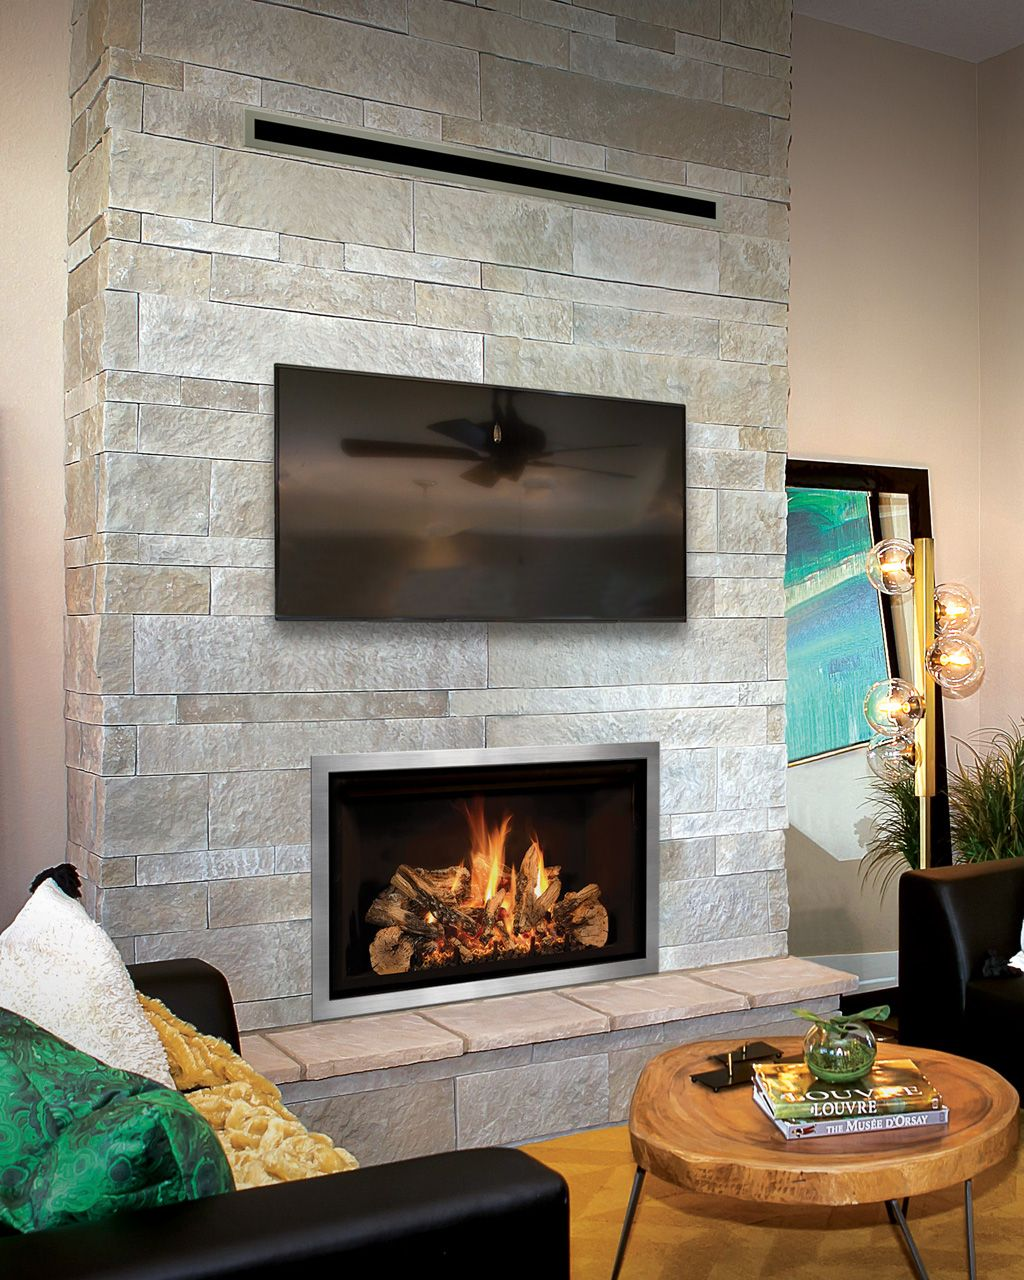 Ready For Spring And Summer Fireplace Heat Diy Fireplace Makeover Gas Fireplace Insert